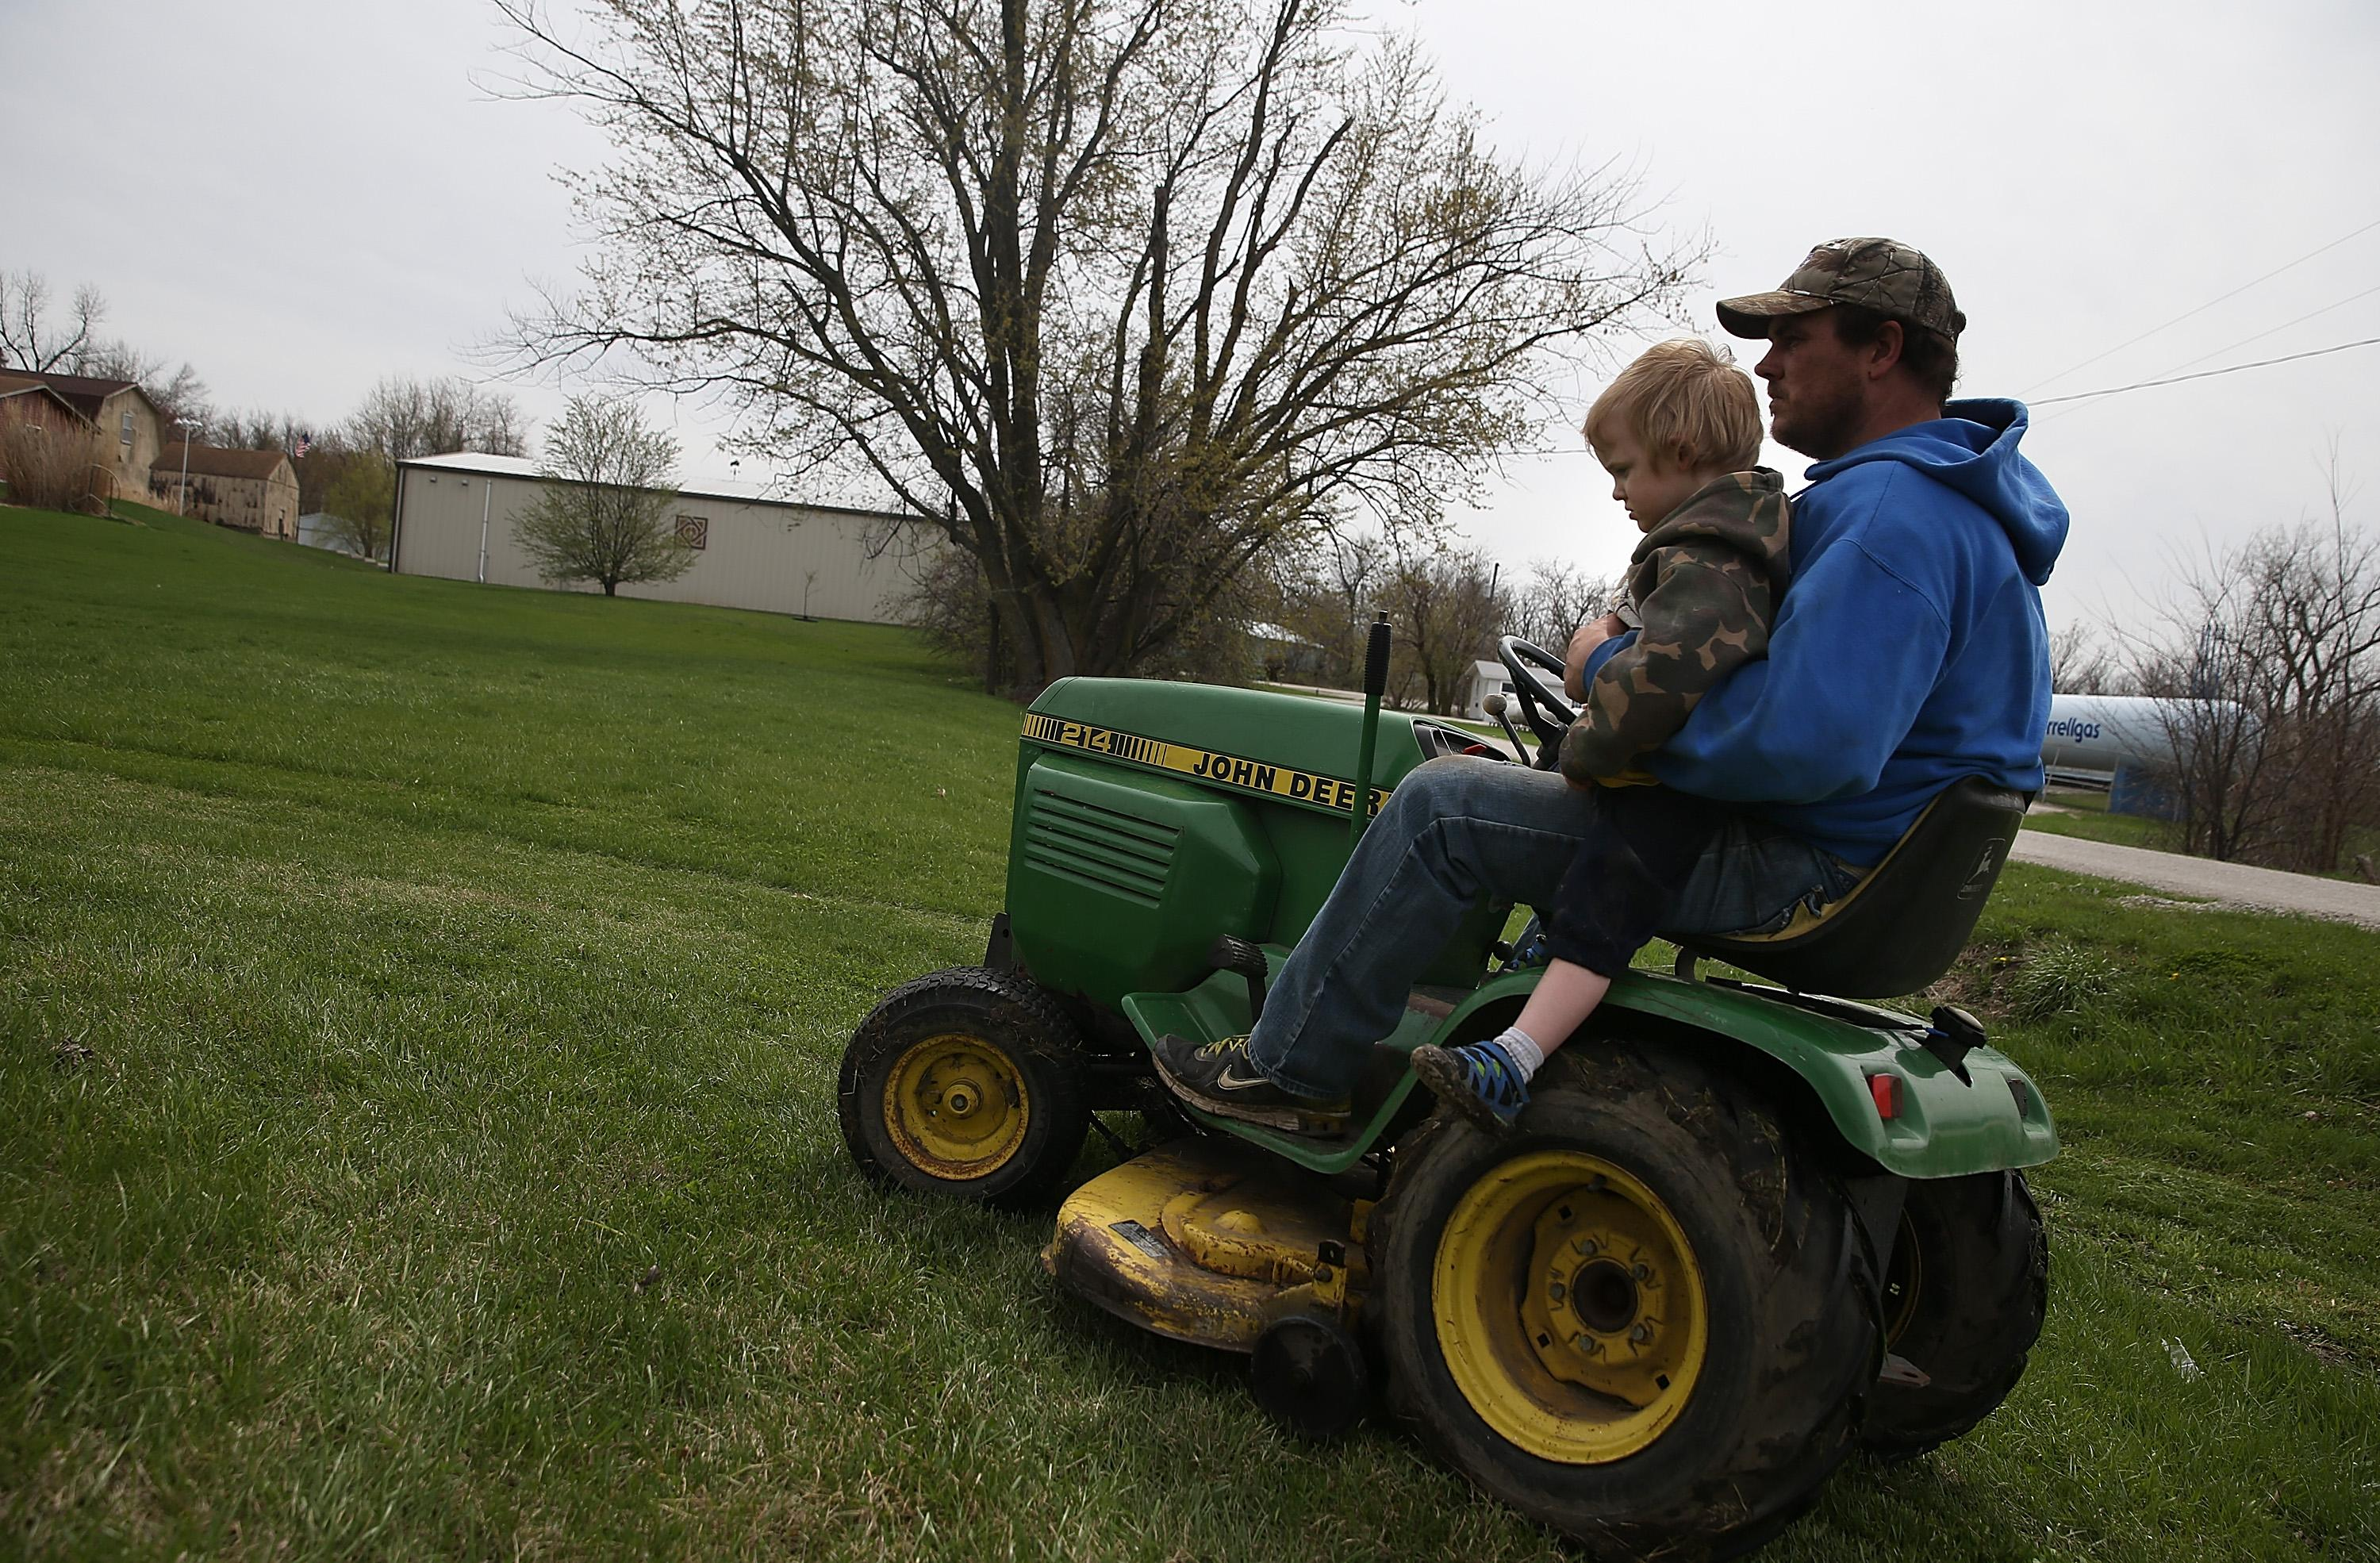 3-year-old boy is hit by a lawn mower